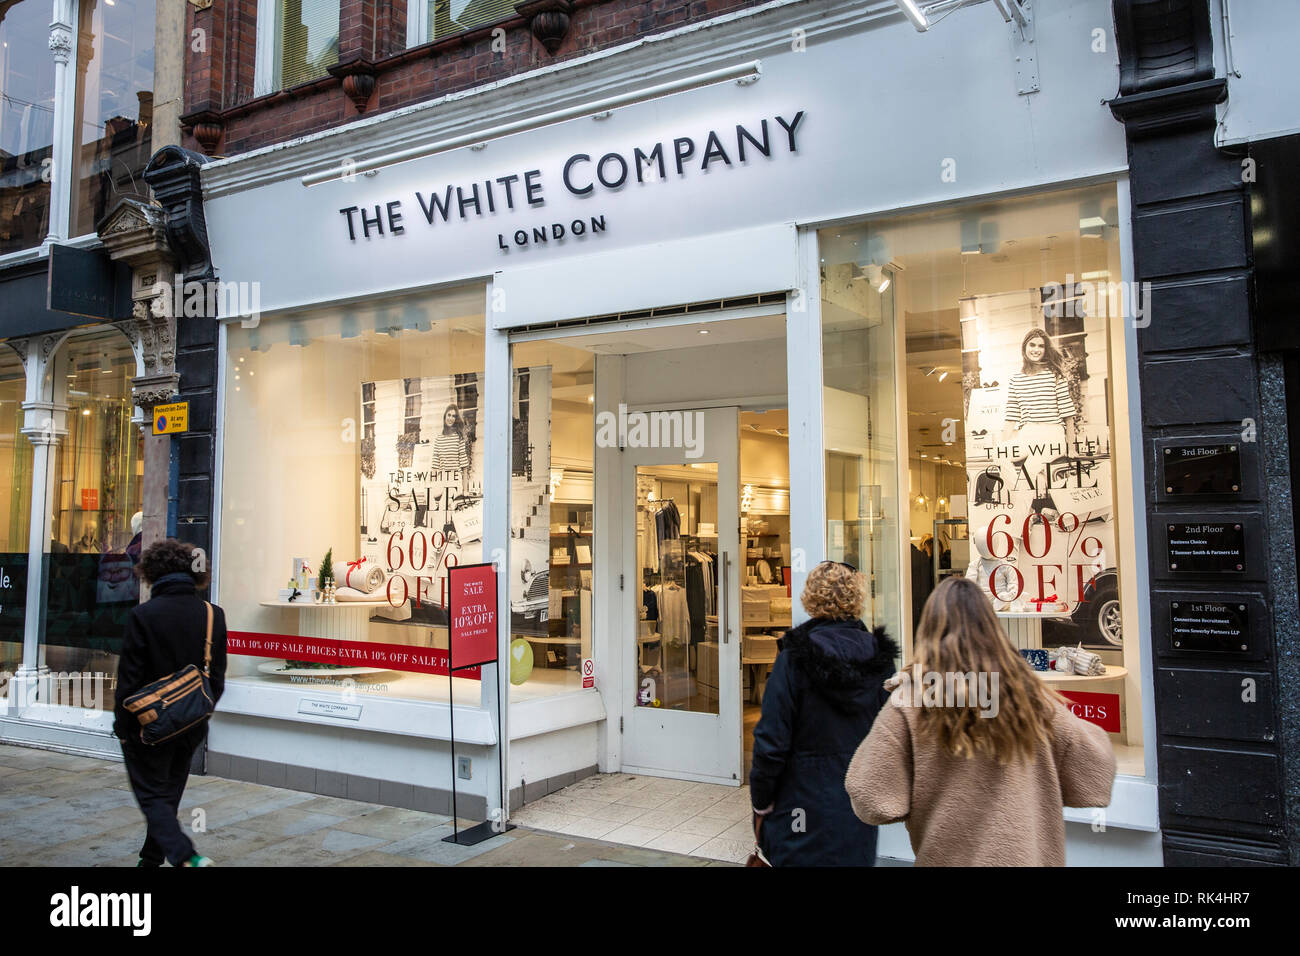 The White Company of London, here a store in Manchester city centre,Manchester,England - Stock Image